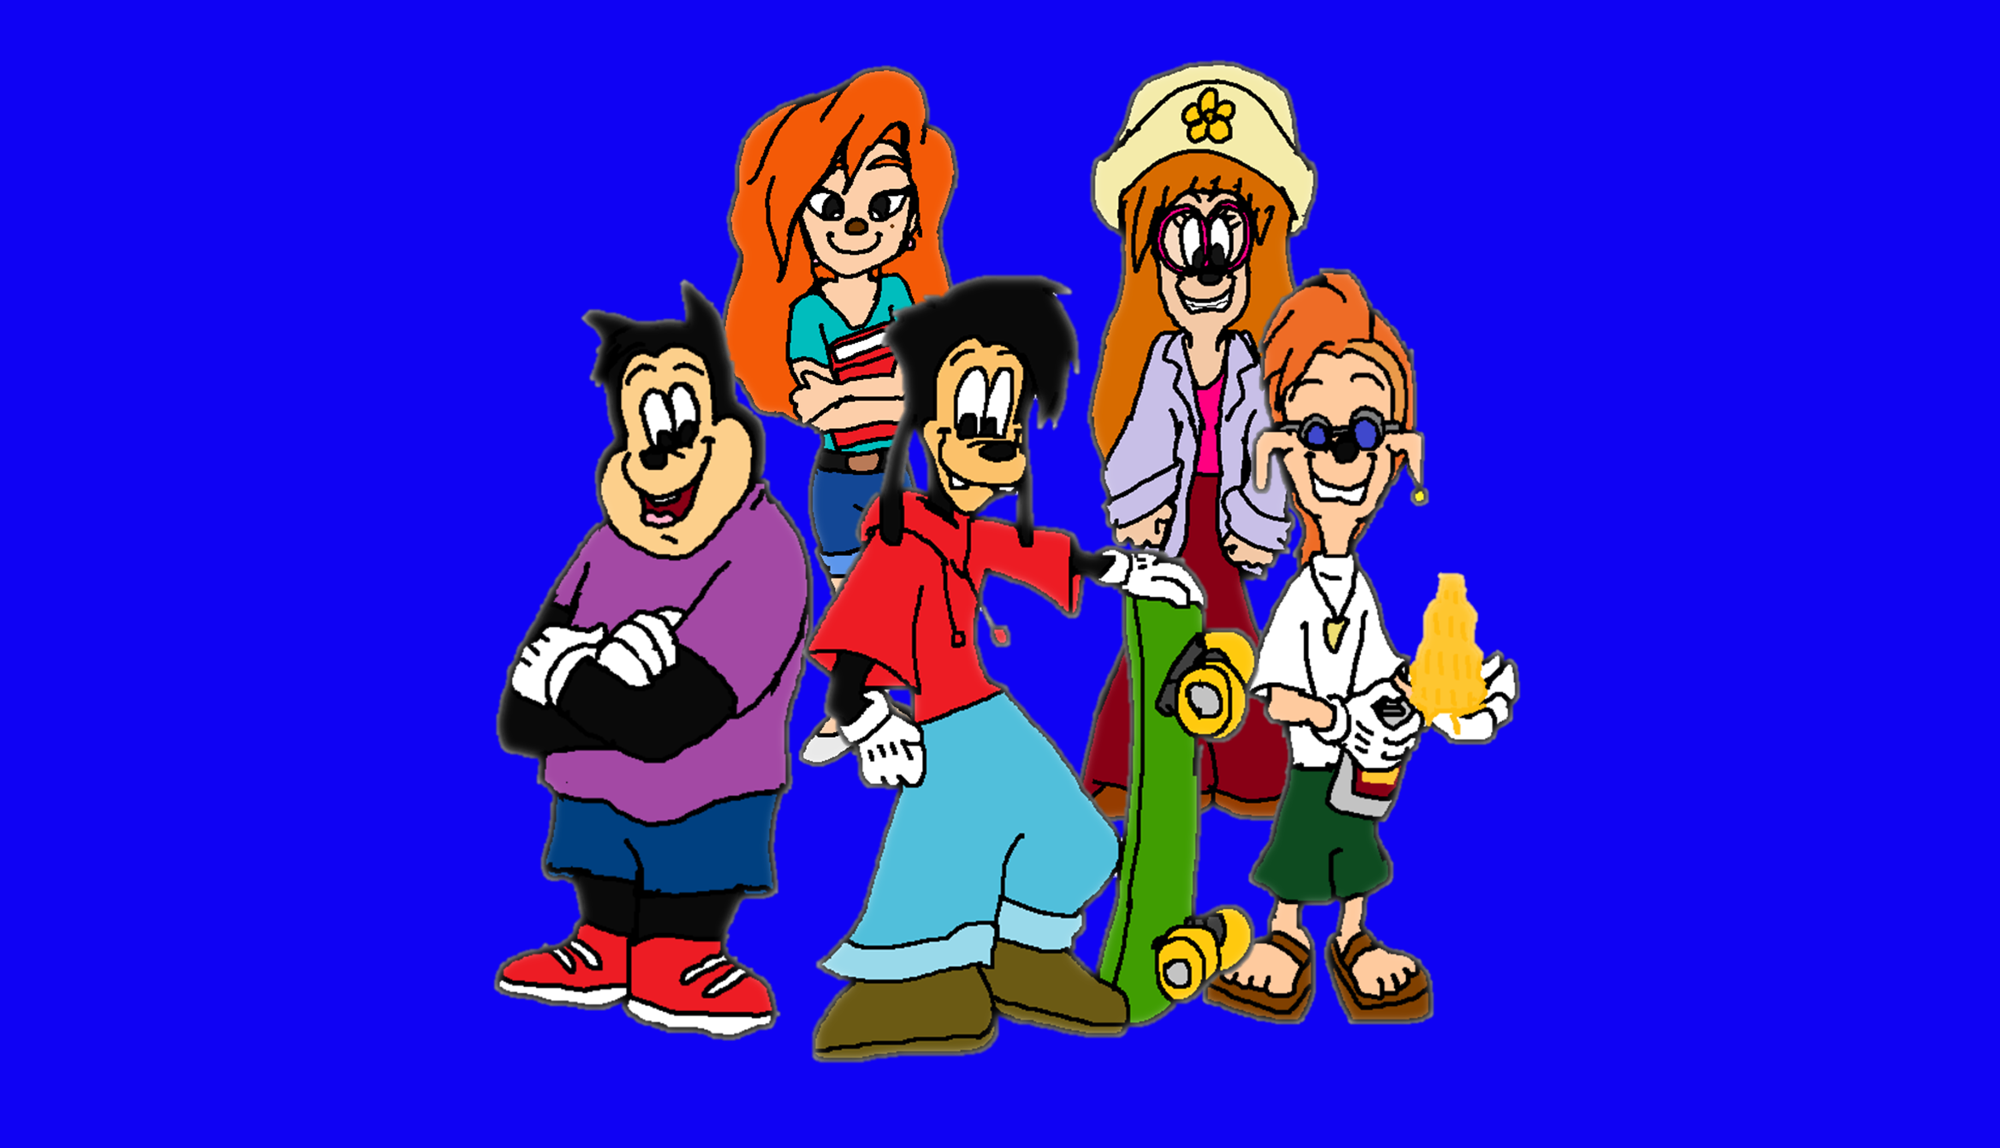 A Goofy Movie Max Pj Bobby Roxanne And Stacy Stacey A Goofy Movie Fan Art 43480809 Fanpop